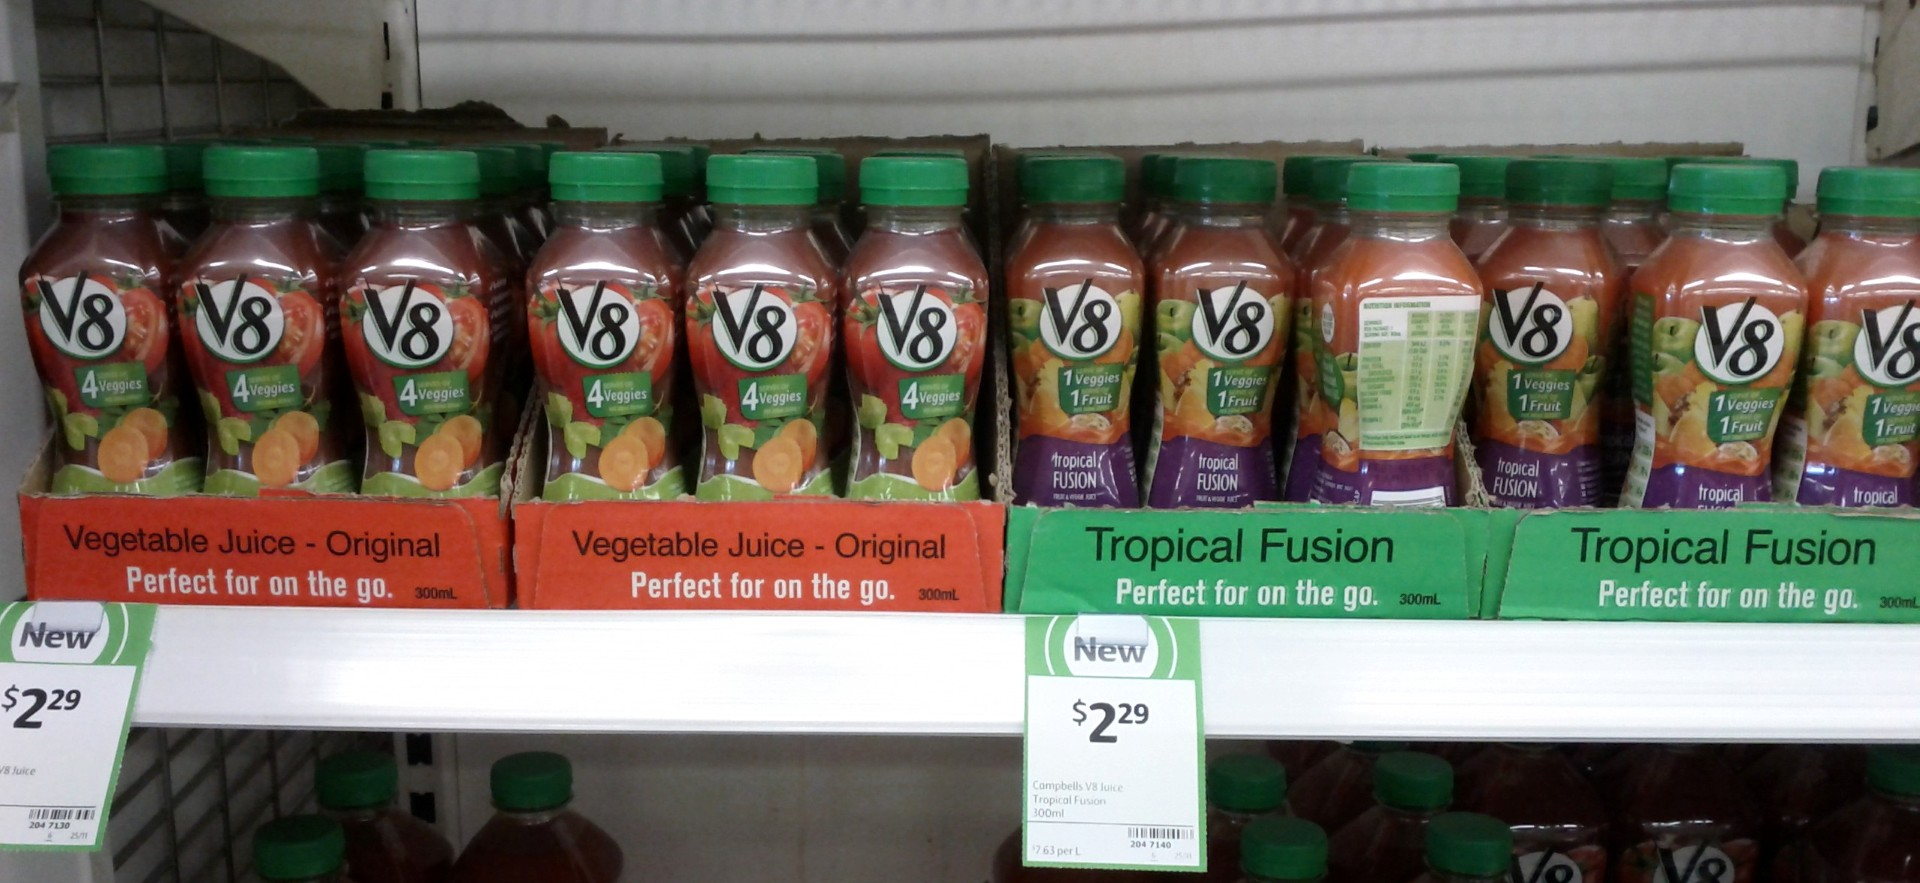 V8 300mL Vegetable Juice, Tropical Fusion